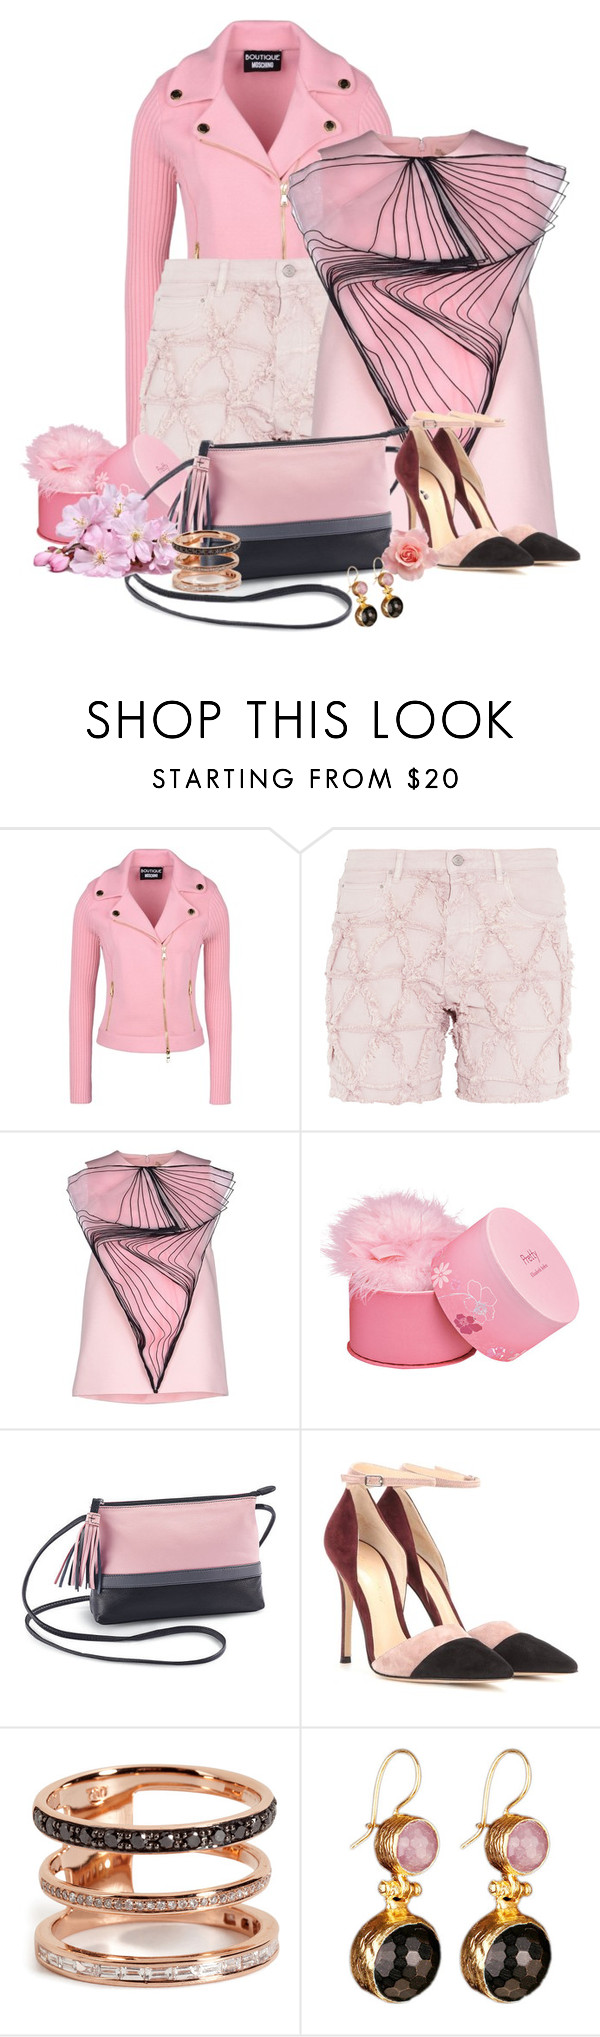 """""""Spring is on the way"""" by nutgirl ❤ liked on Polyvore featuring Boutique Moschino, Isabel Marant, Christopher Kane, Elizabeth Arden, Gianvito Rossi, Nikos Koulis, women's clothing, women, female and woman"""